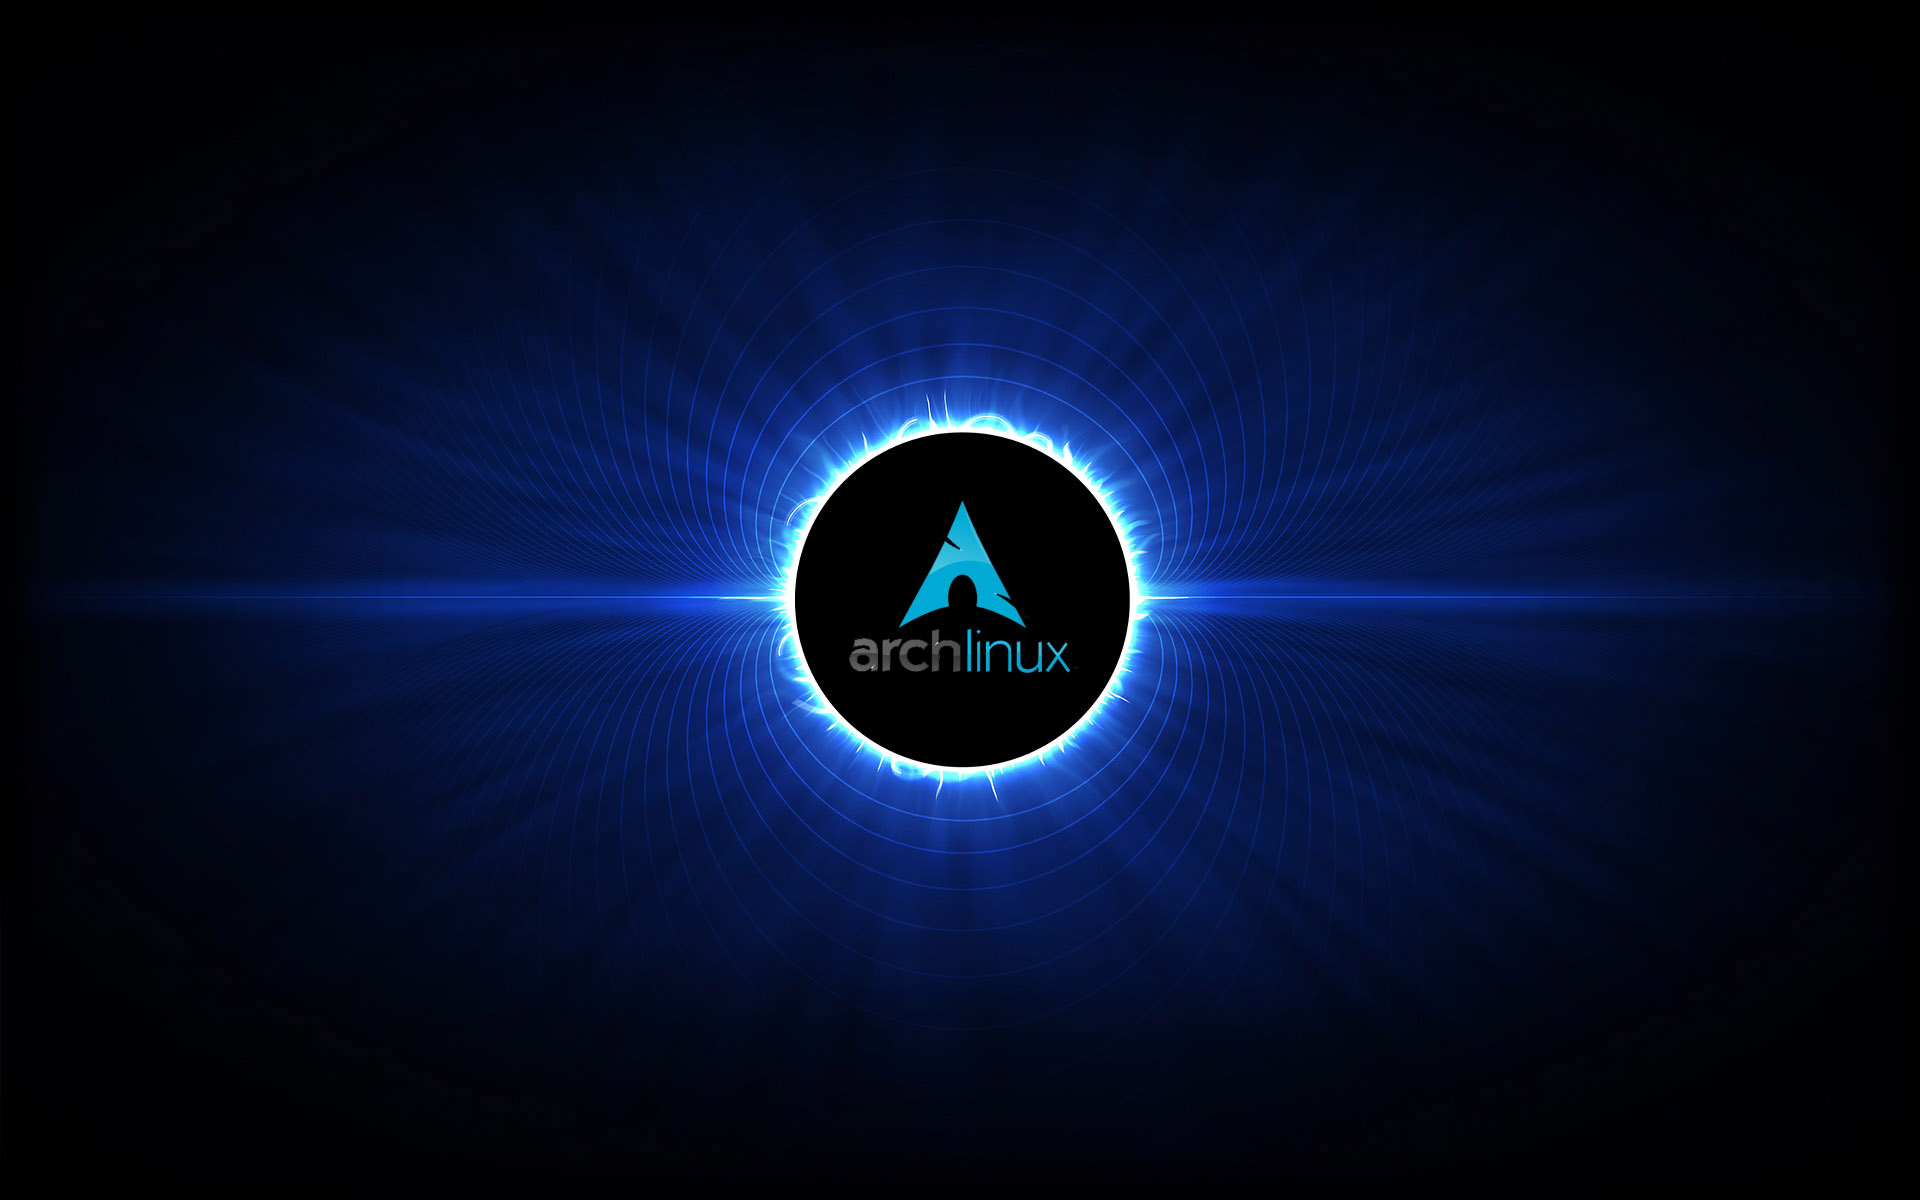 Image Arch Linux Universe Wallpapers And Stock Photos